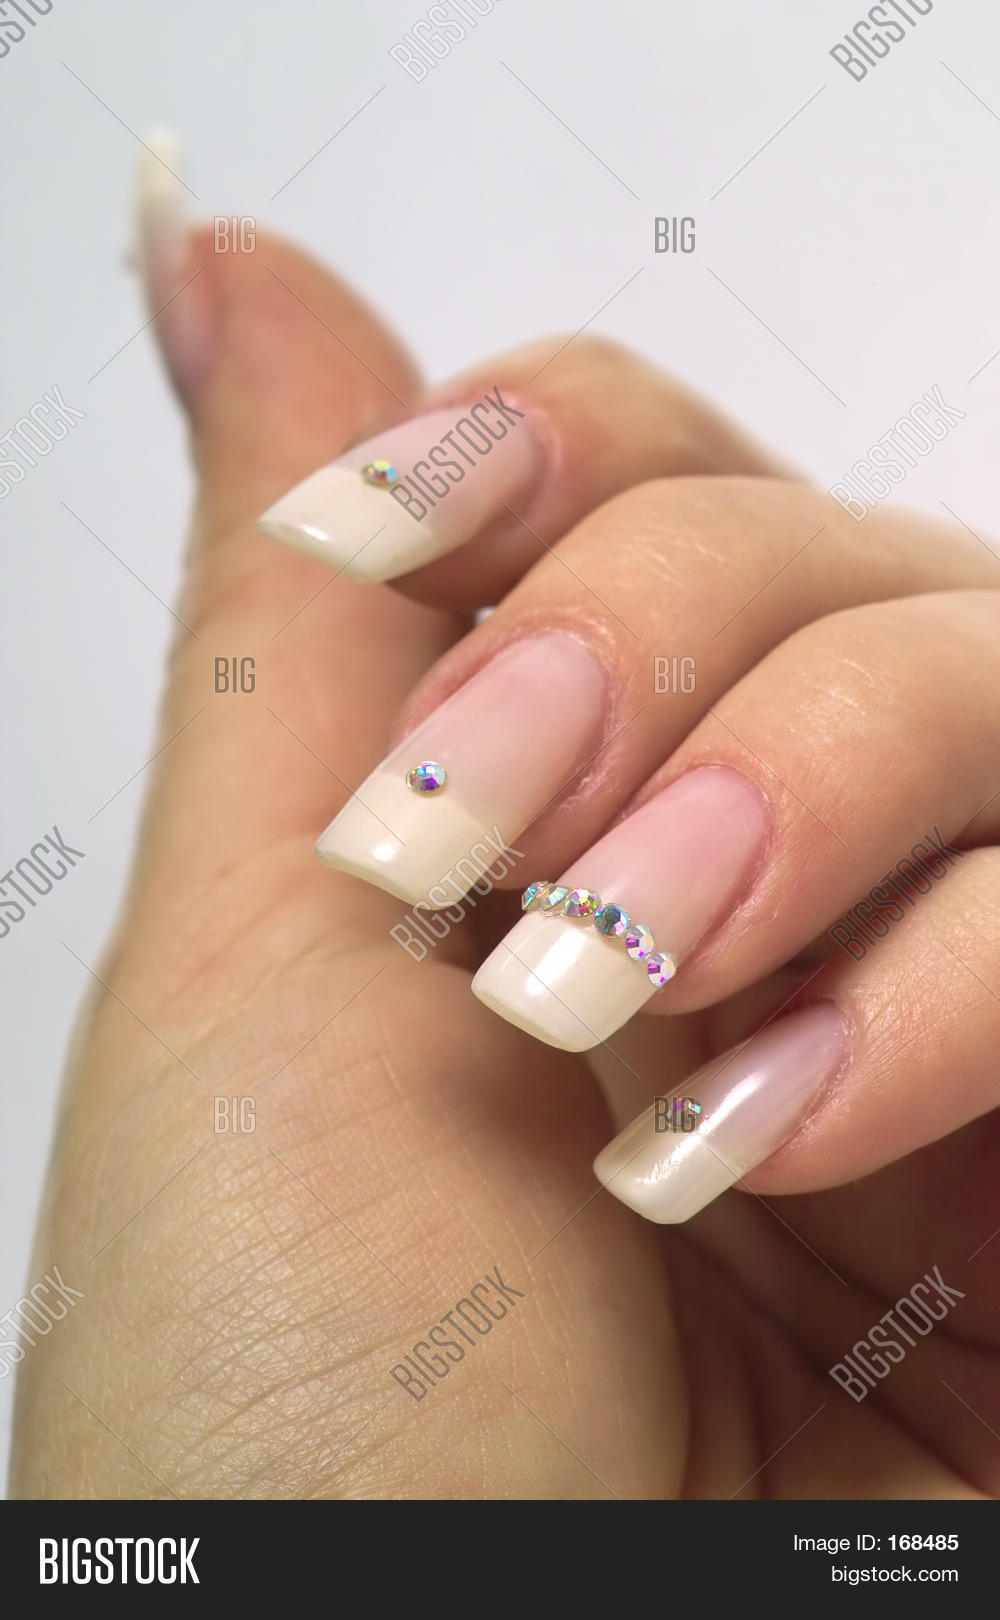 French Manicure Image & Photo (Free Trial) | Bigstock